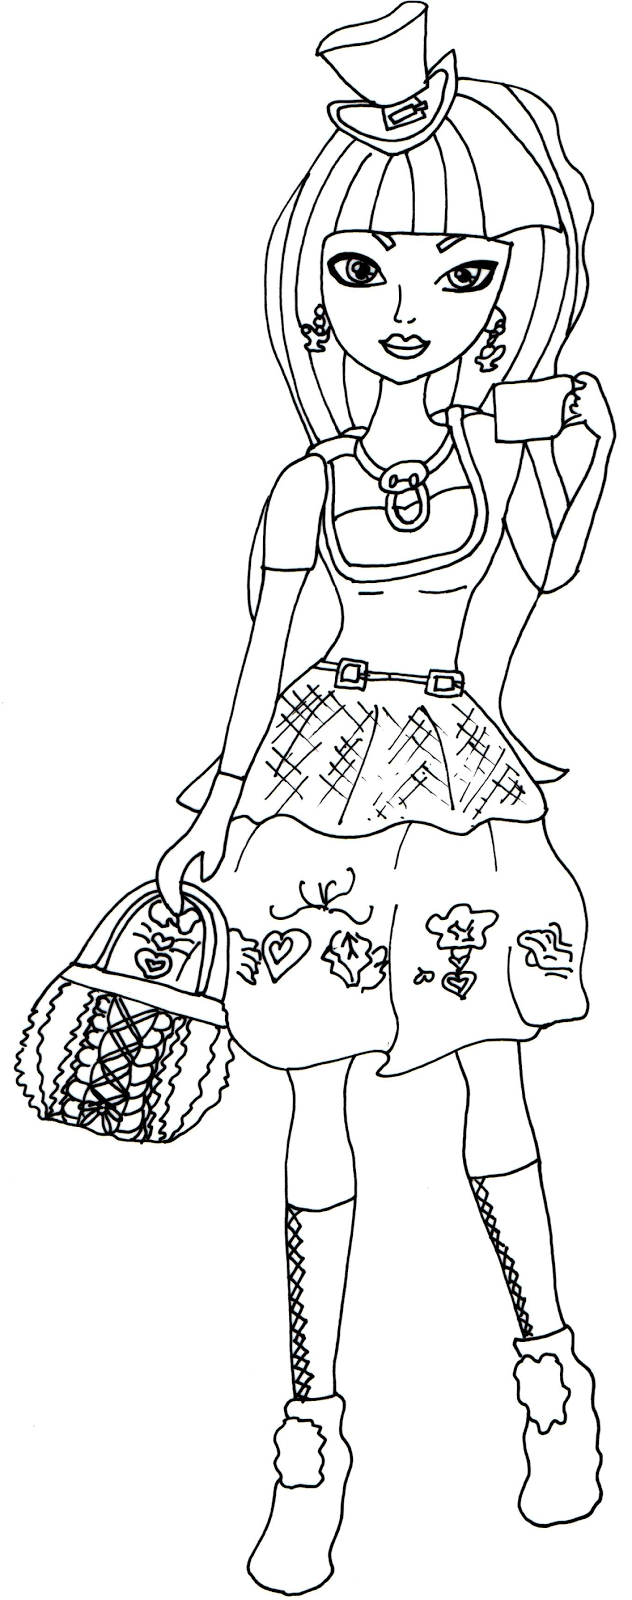 Free coloring pages ever after high - Free Printable Ever After High Coloring Pages Cerise Hood Hat Tastic Ever After High